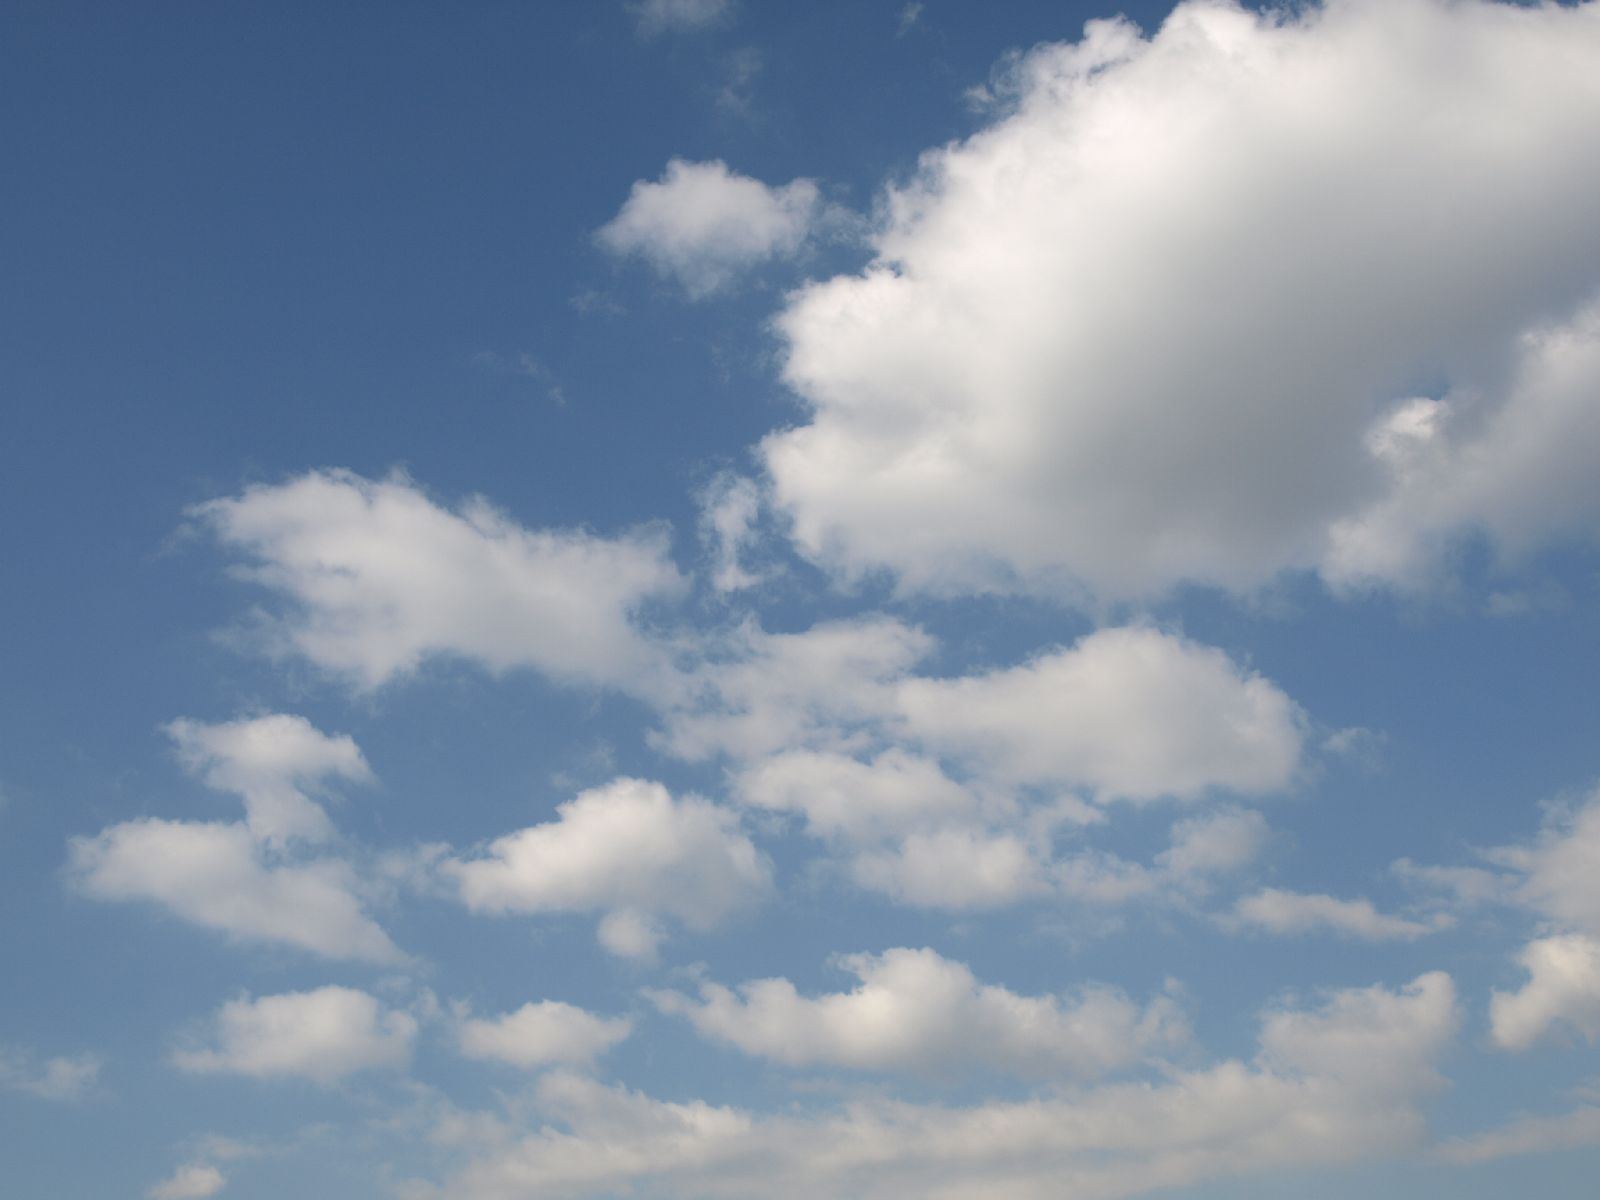 Sky_Clouds_Photo_Texture_A_P4171329